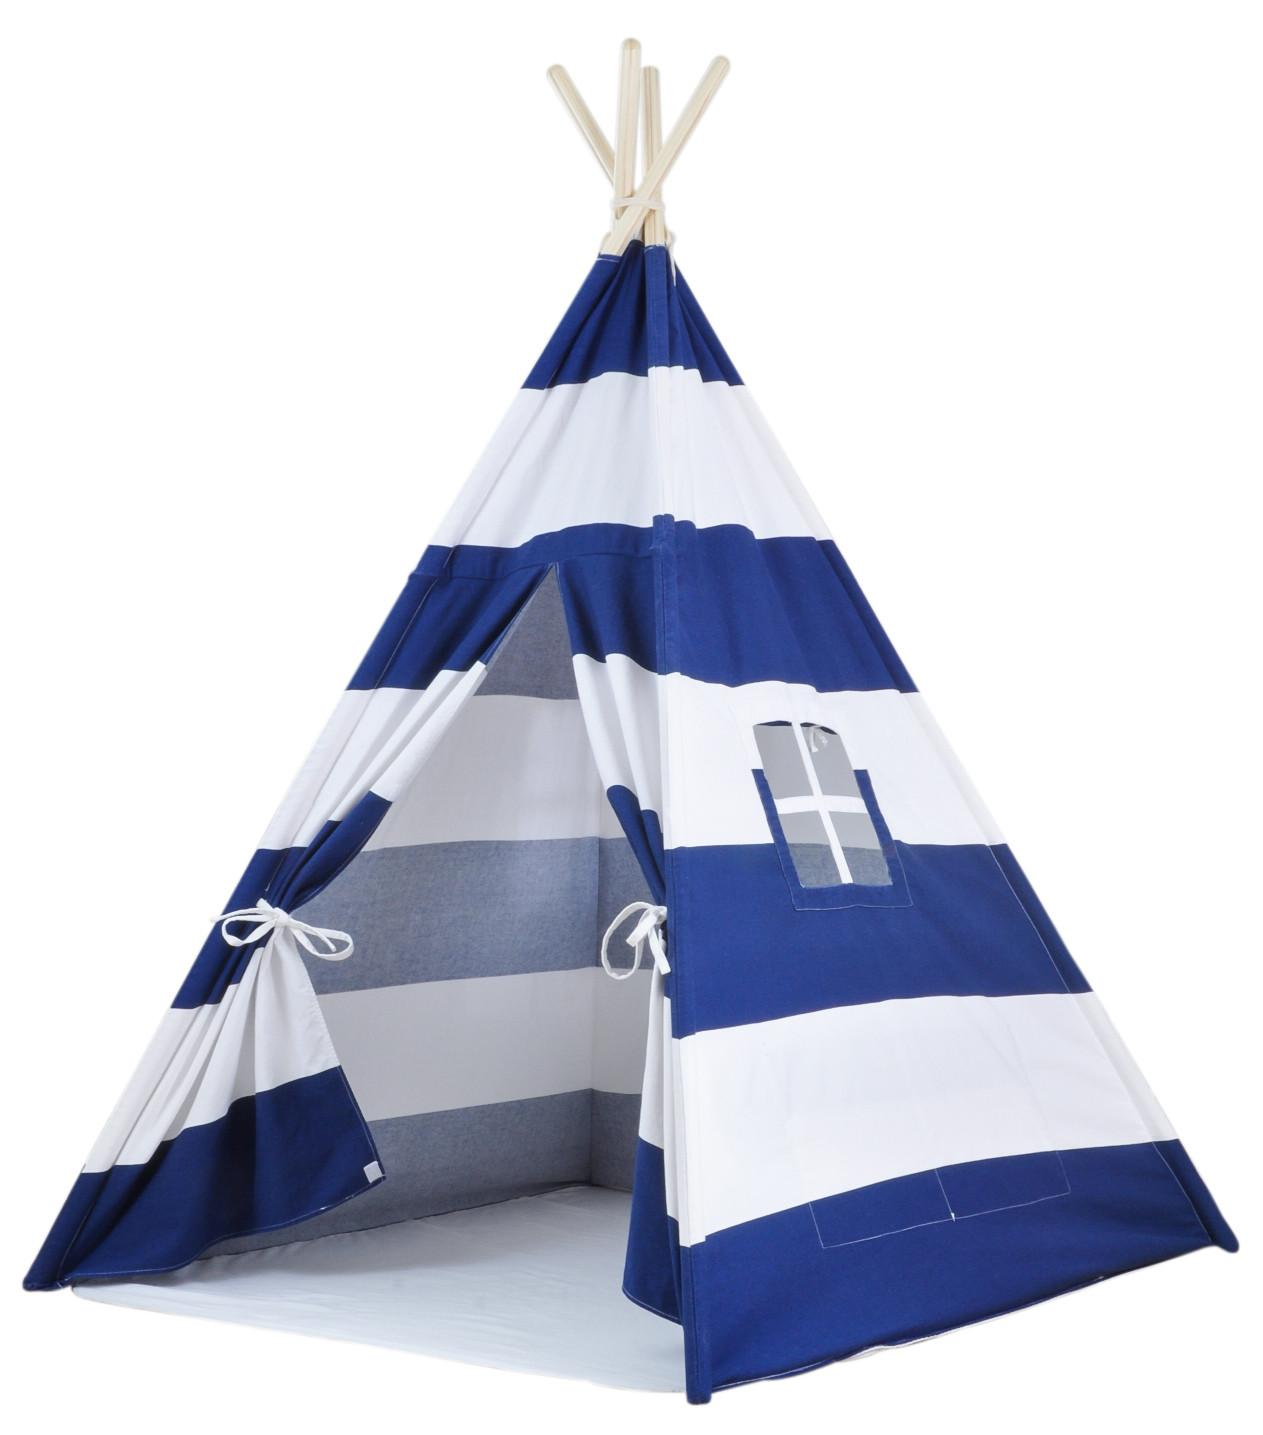 Portable Kids Canvas Teepee Tent Carrying Case Large